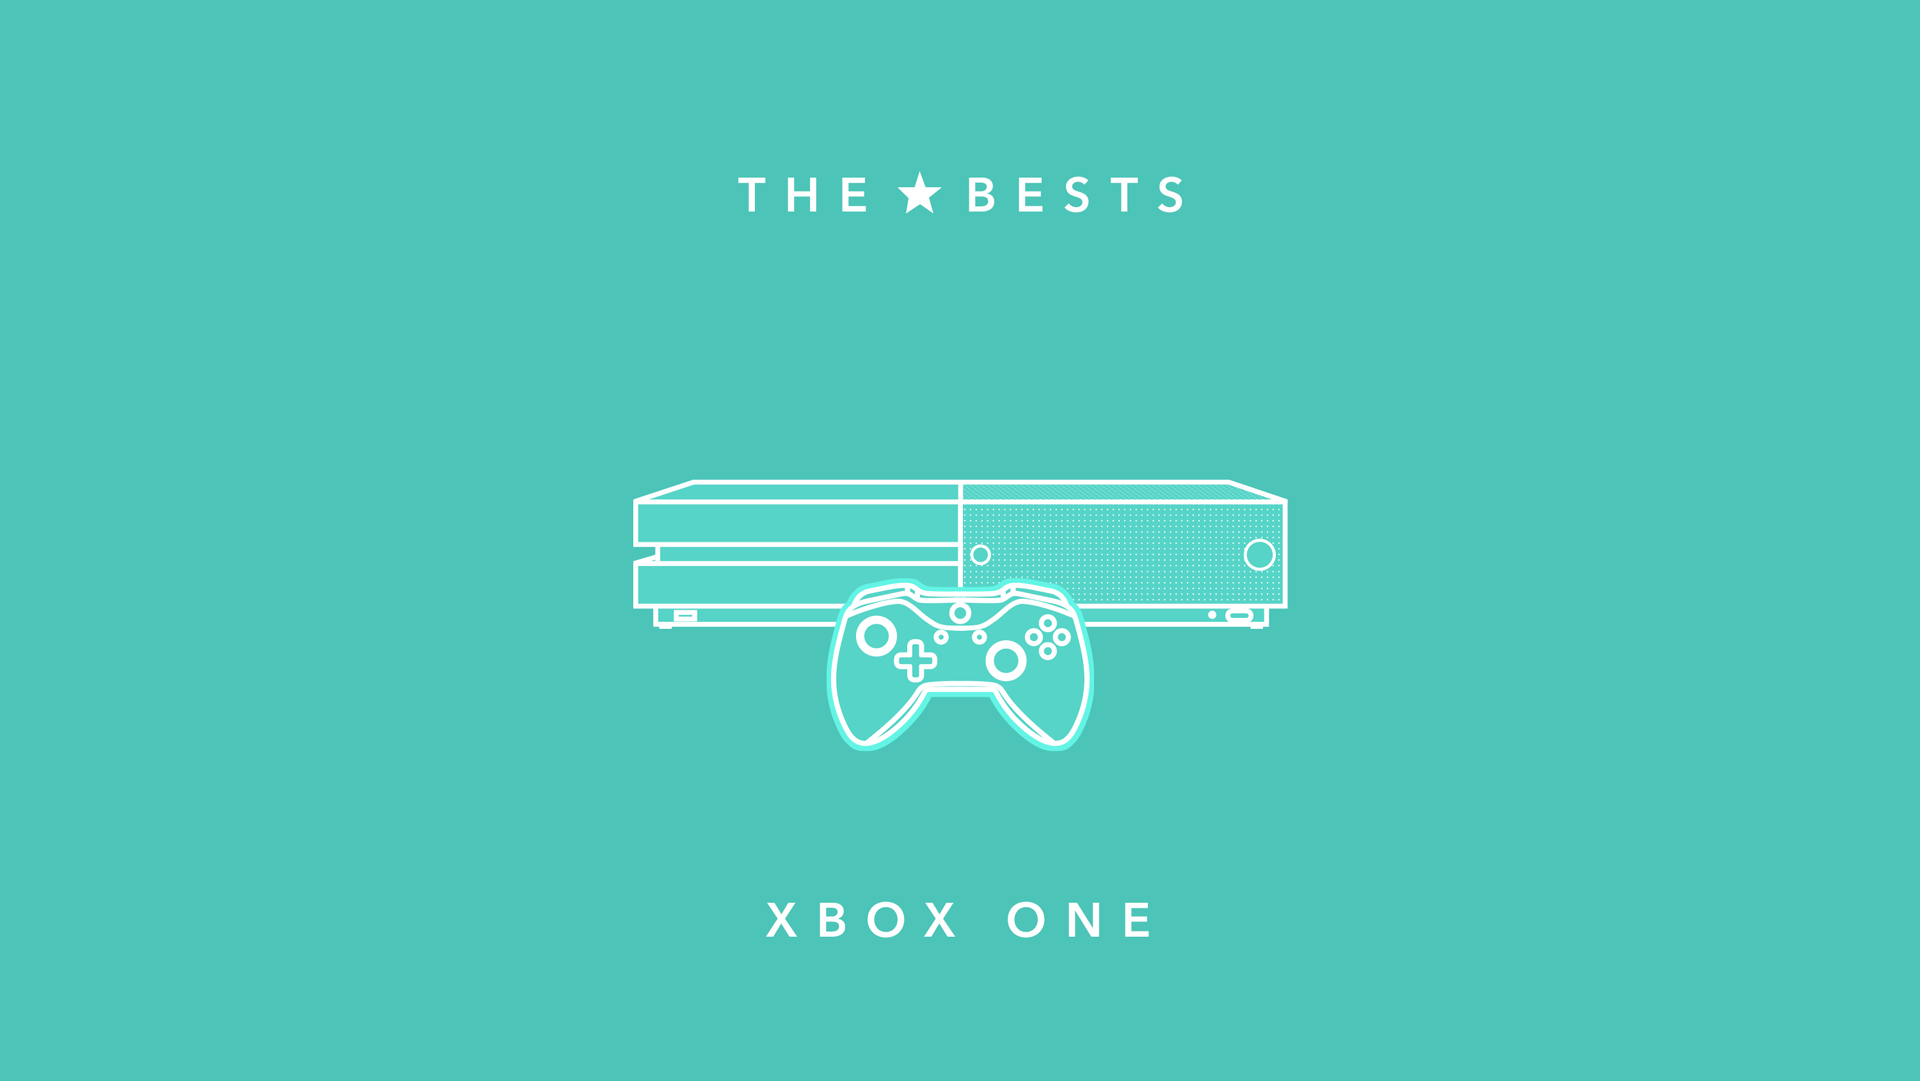 The 12 Best Games For The Xbox One